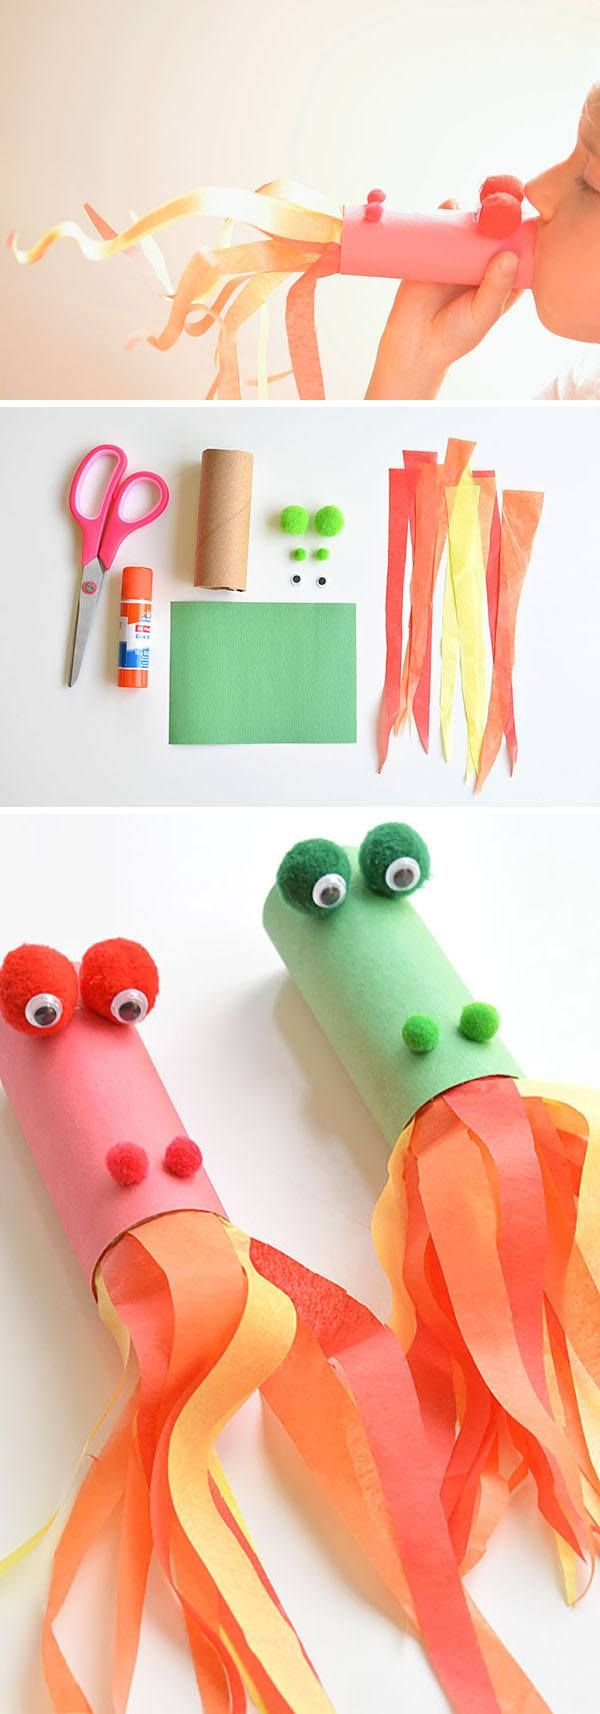 15 Toilet Paper Roll Crafts For Kids Paper Plate Art Crafts For